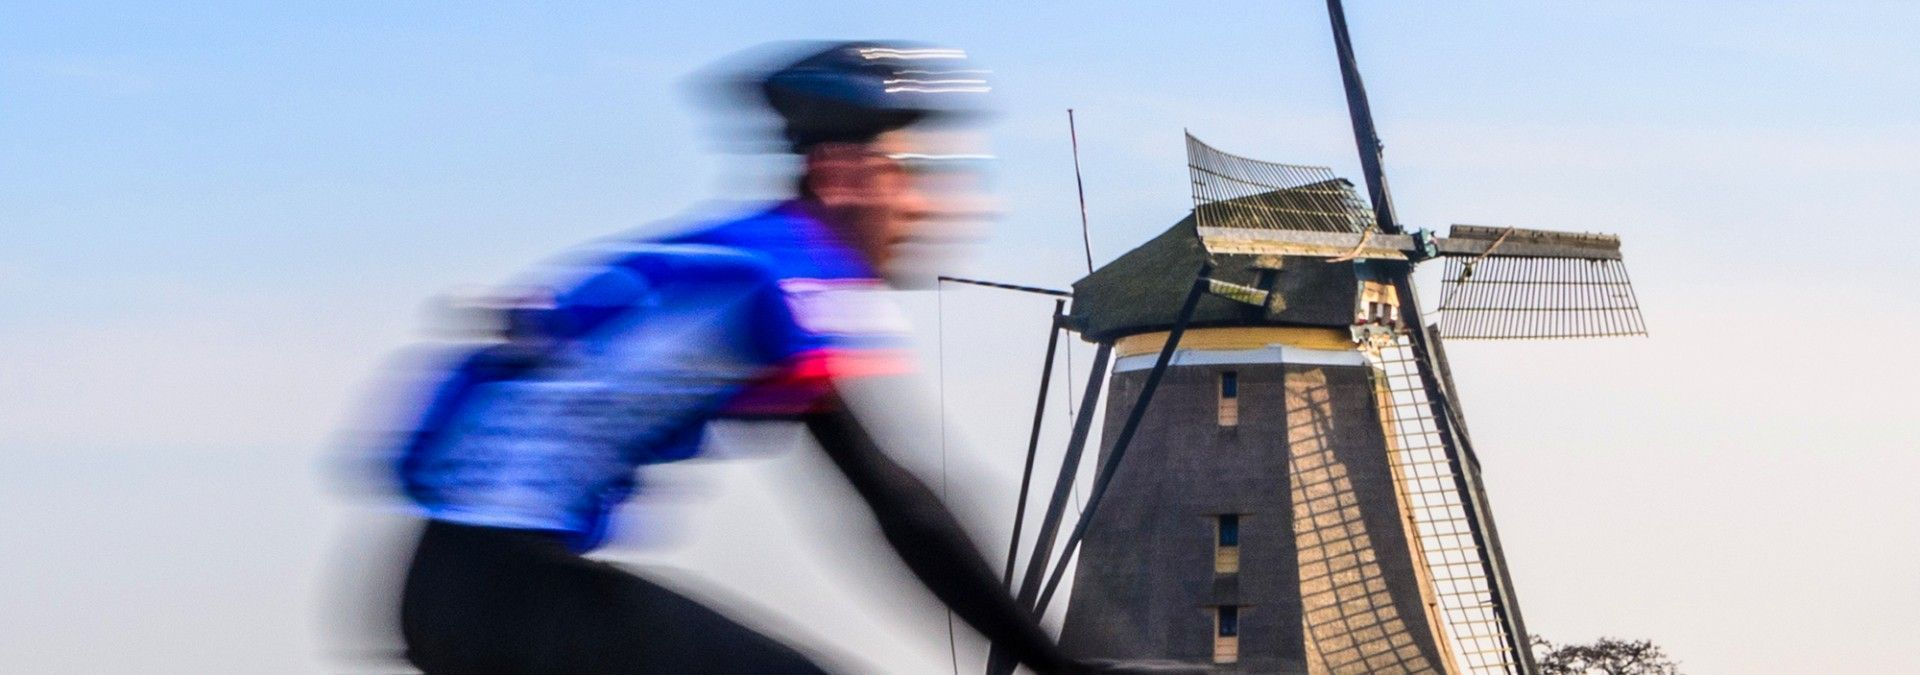 Cycling_past_windmill_Amsterdam.jpg